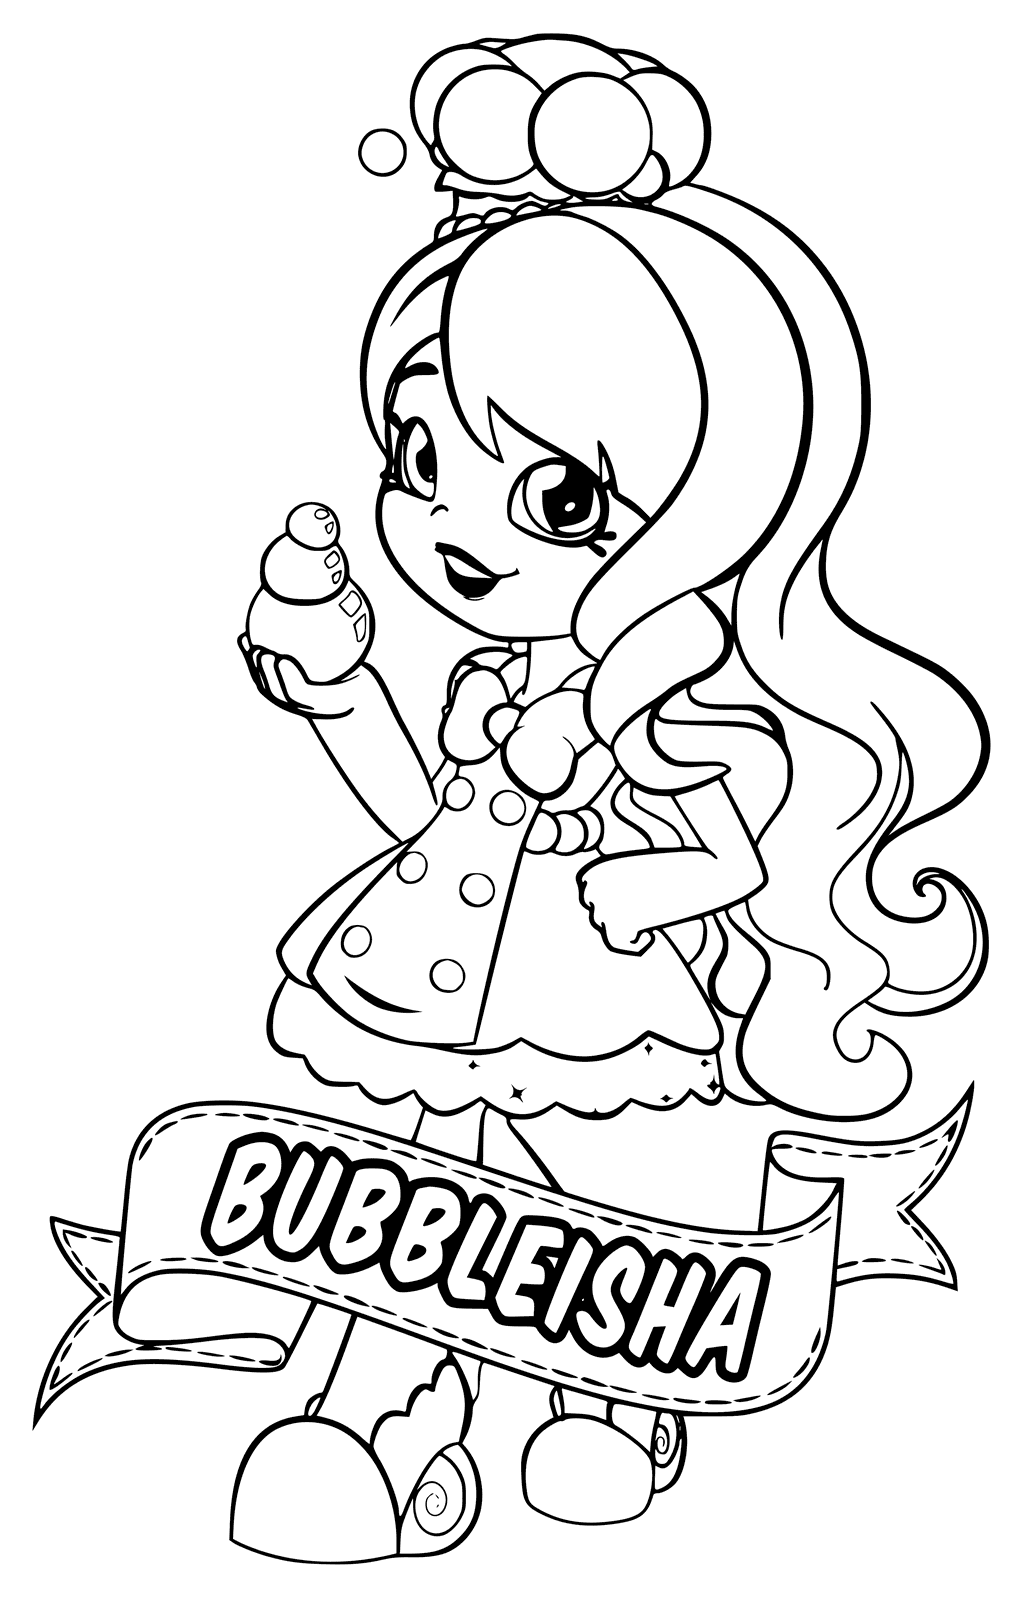 Chef Trolls Coloring Pages